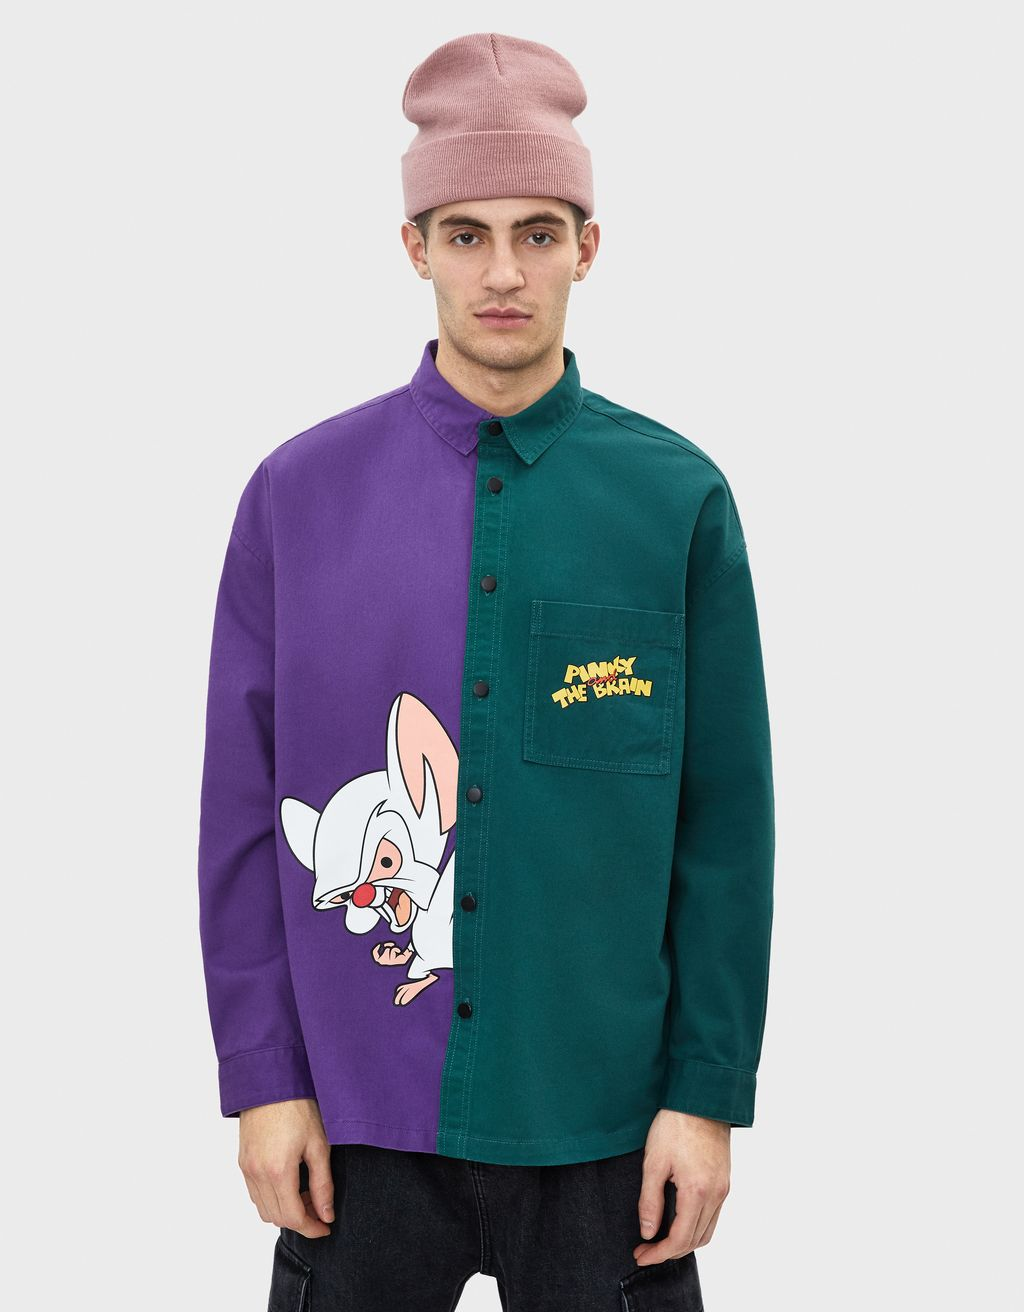 Jachetă overshirt Pinky & The brain